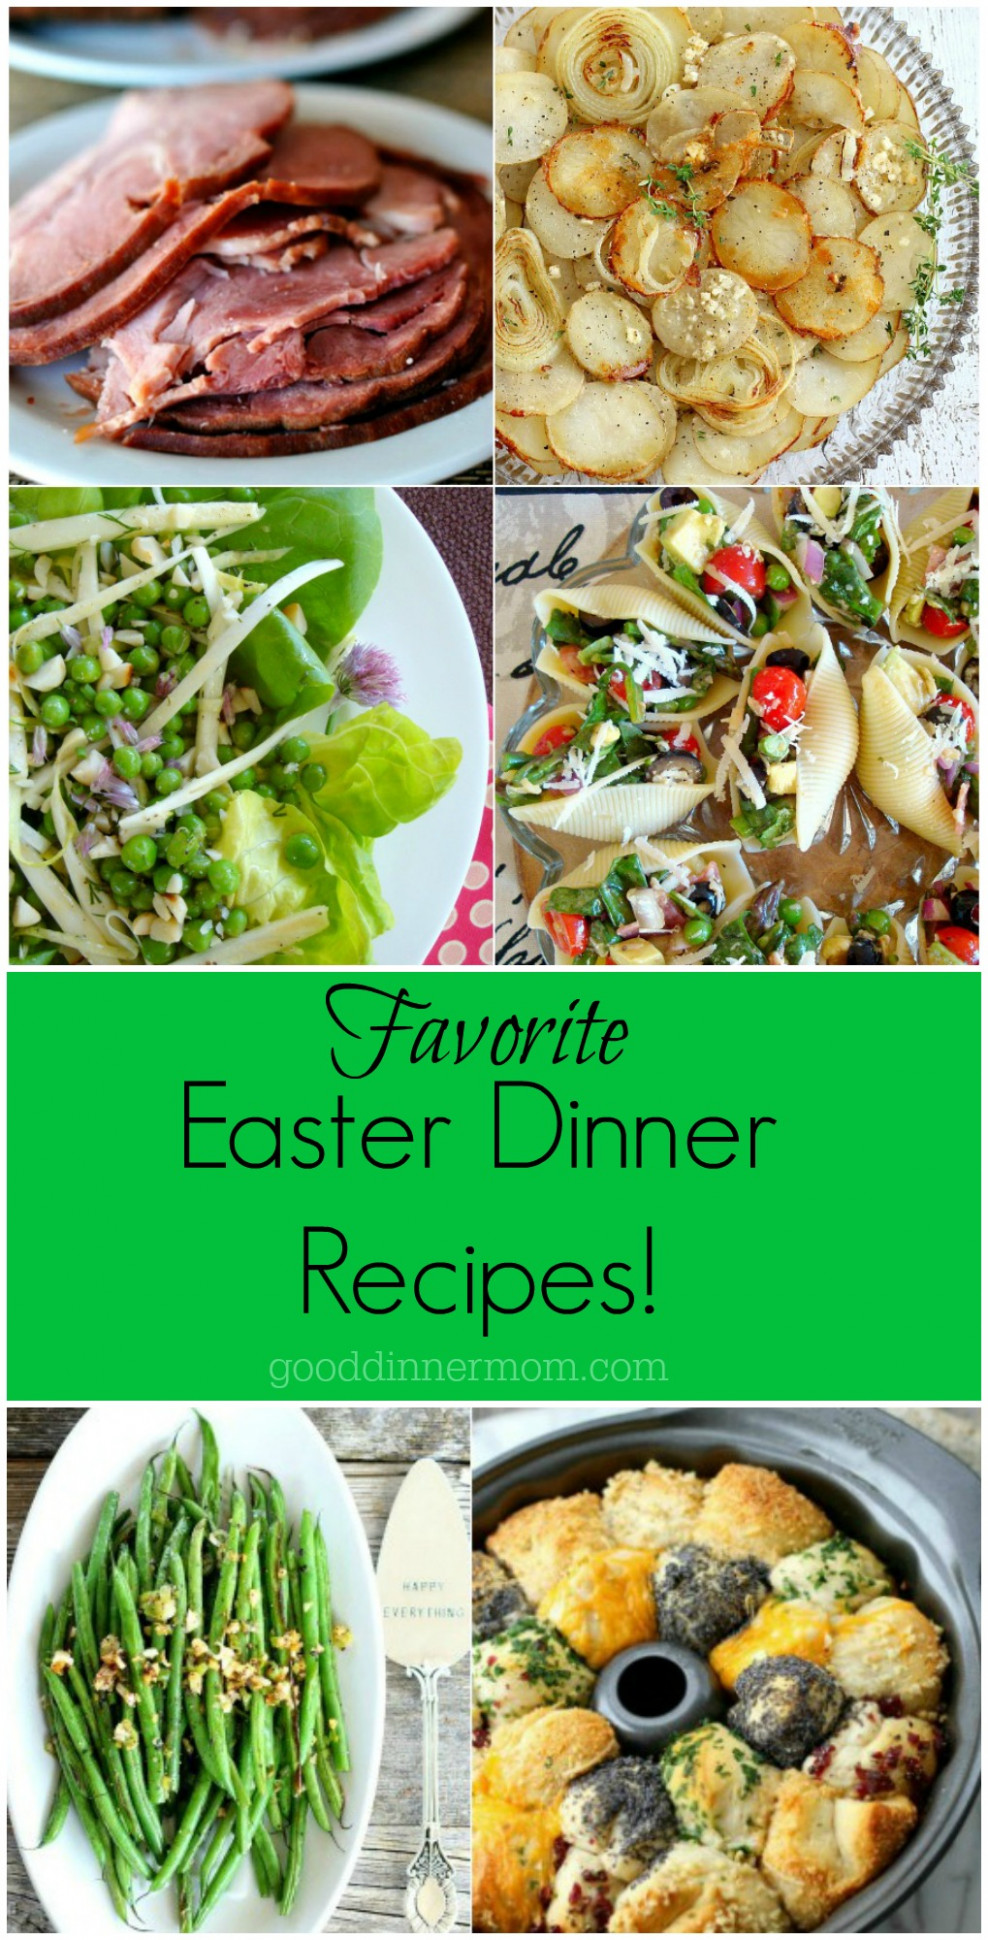 Easter Dinner Recipes - Good Dinner Mom - recipes easter dinner